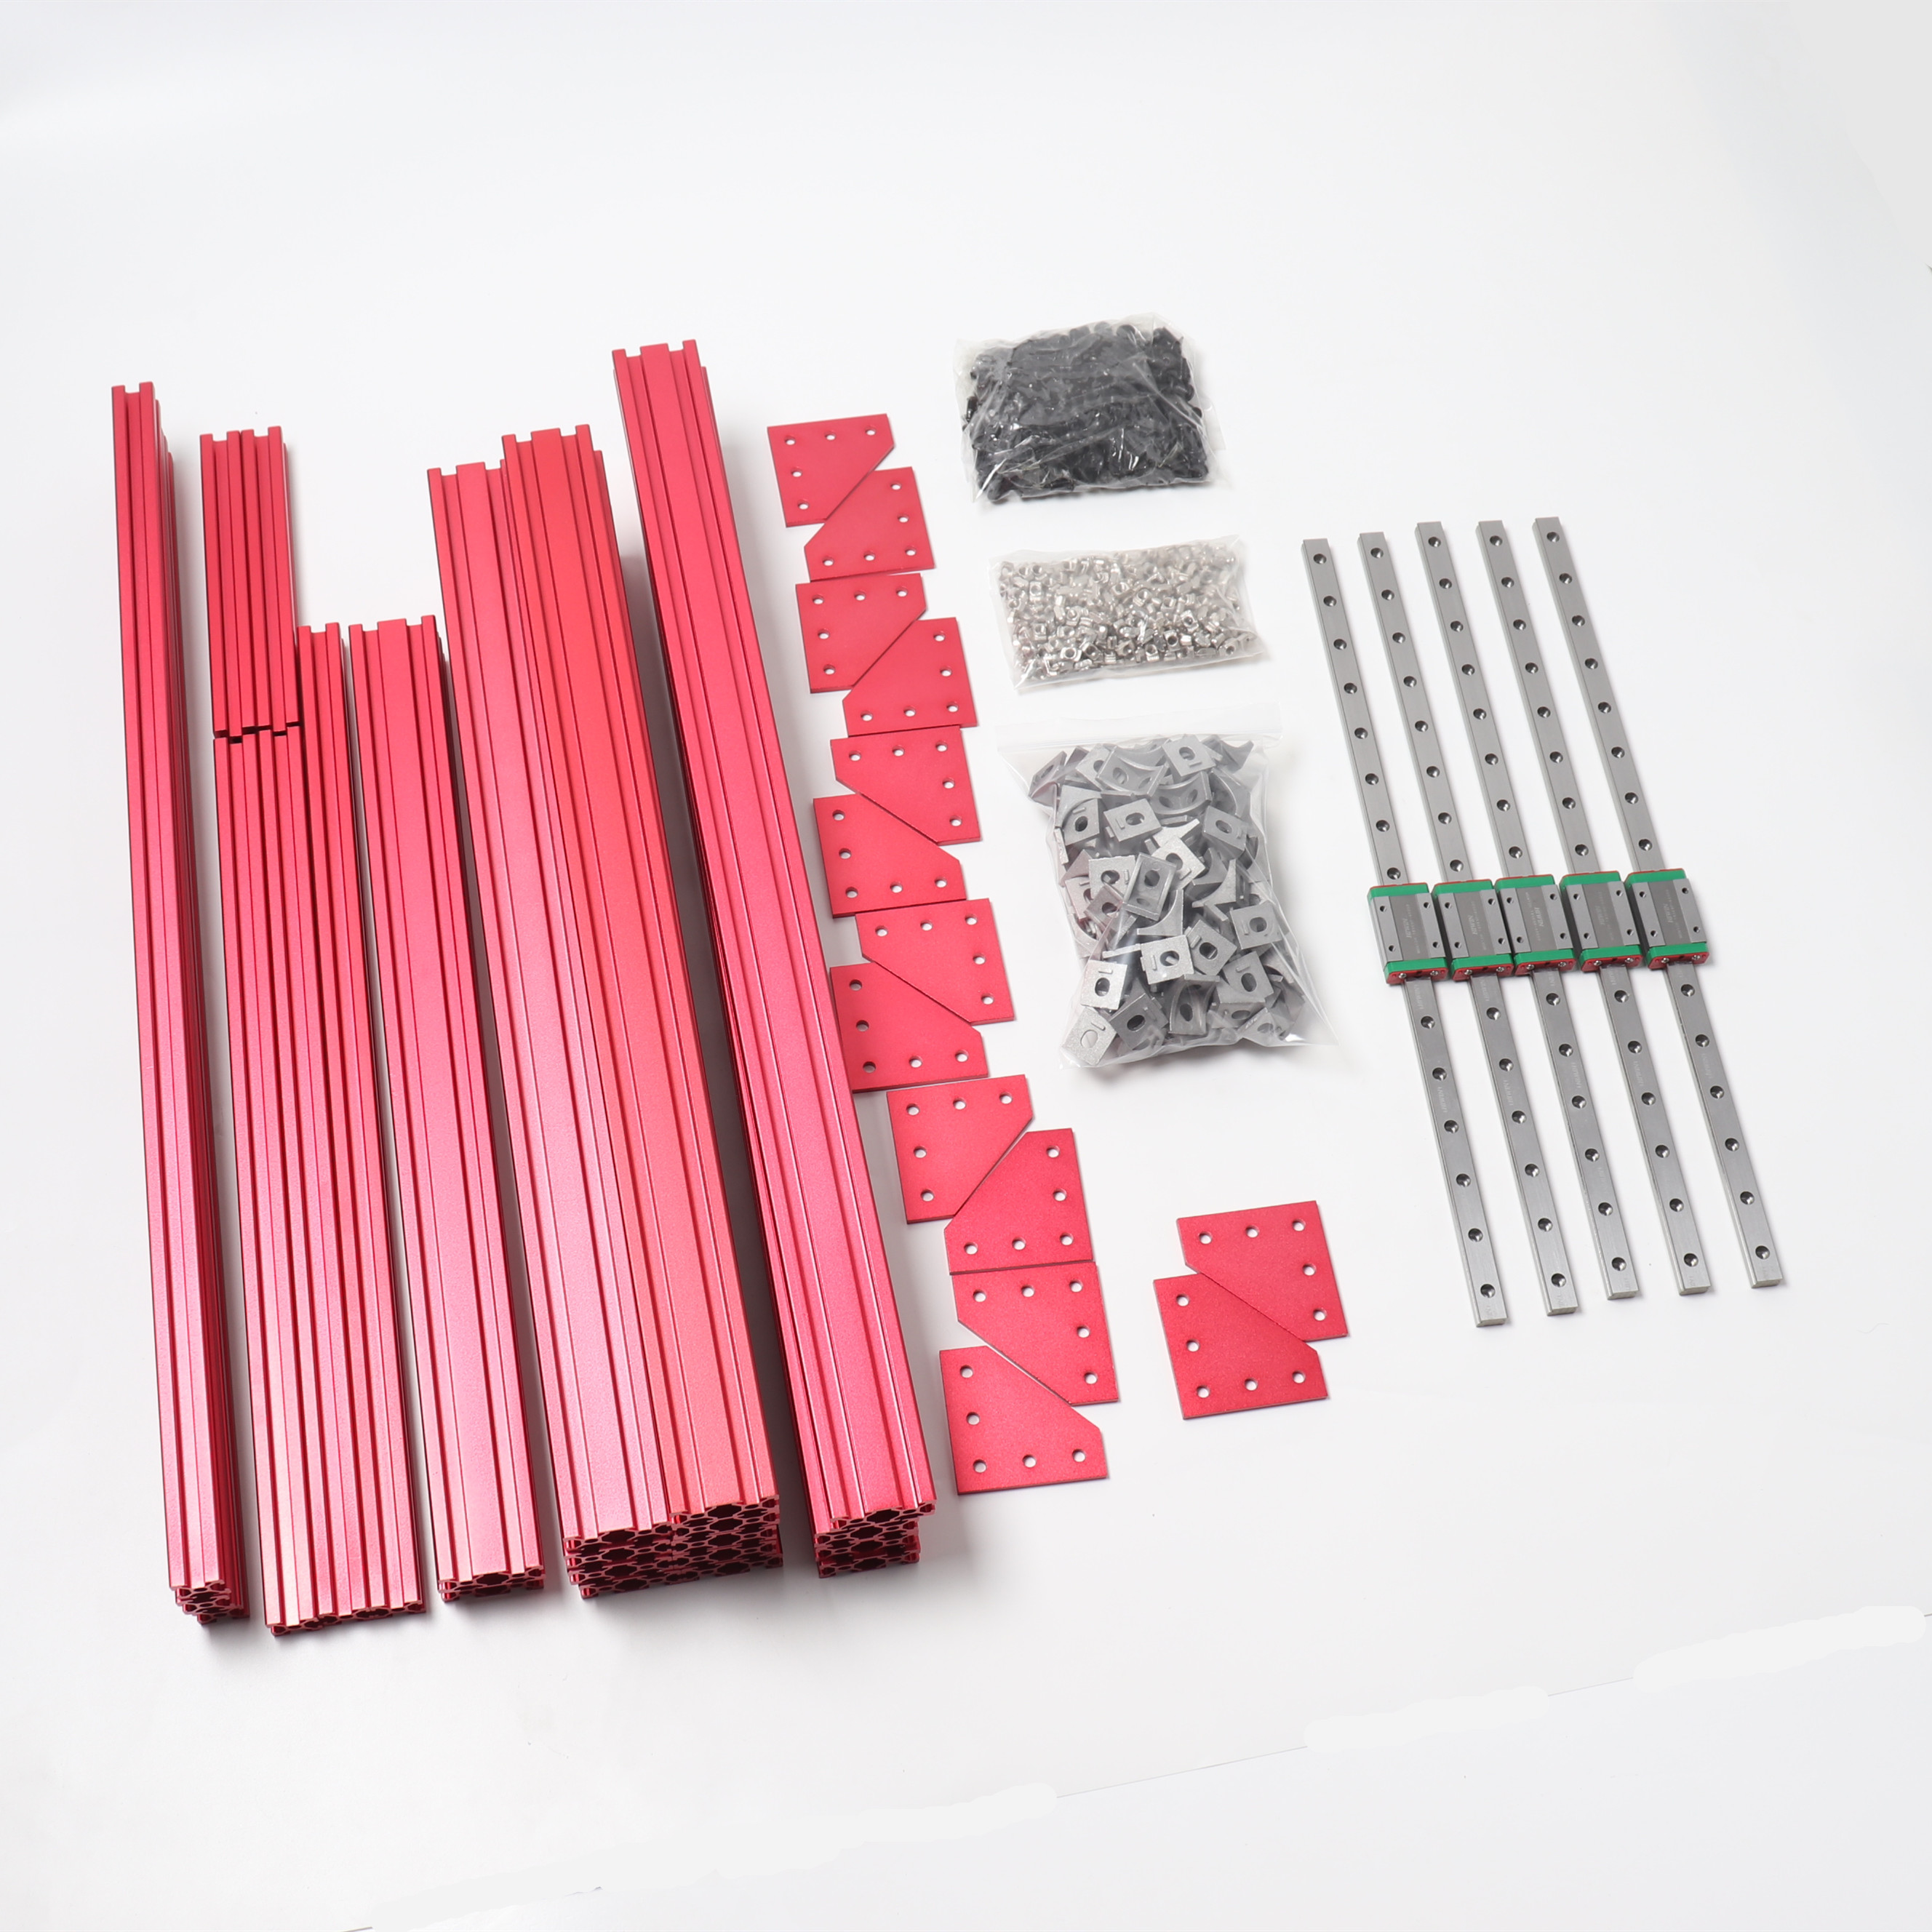 BLV MGN12 Cube 3d Printer Extrusions Frame Kit With Genuine Hiwin MGN12H 400mm Linear Rails